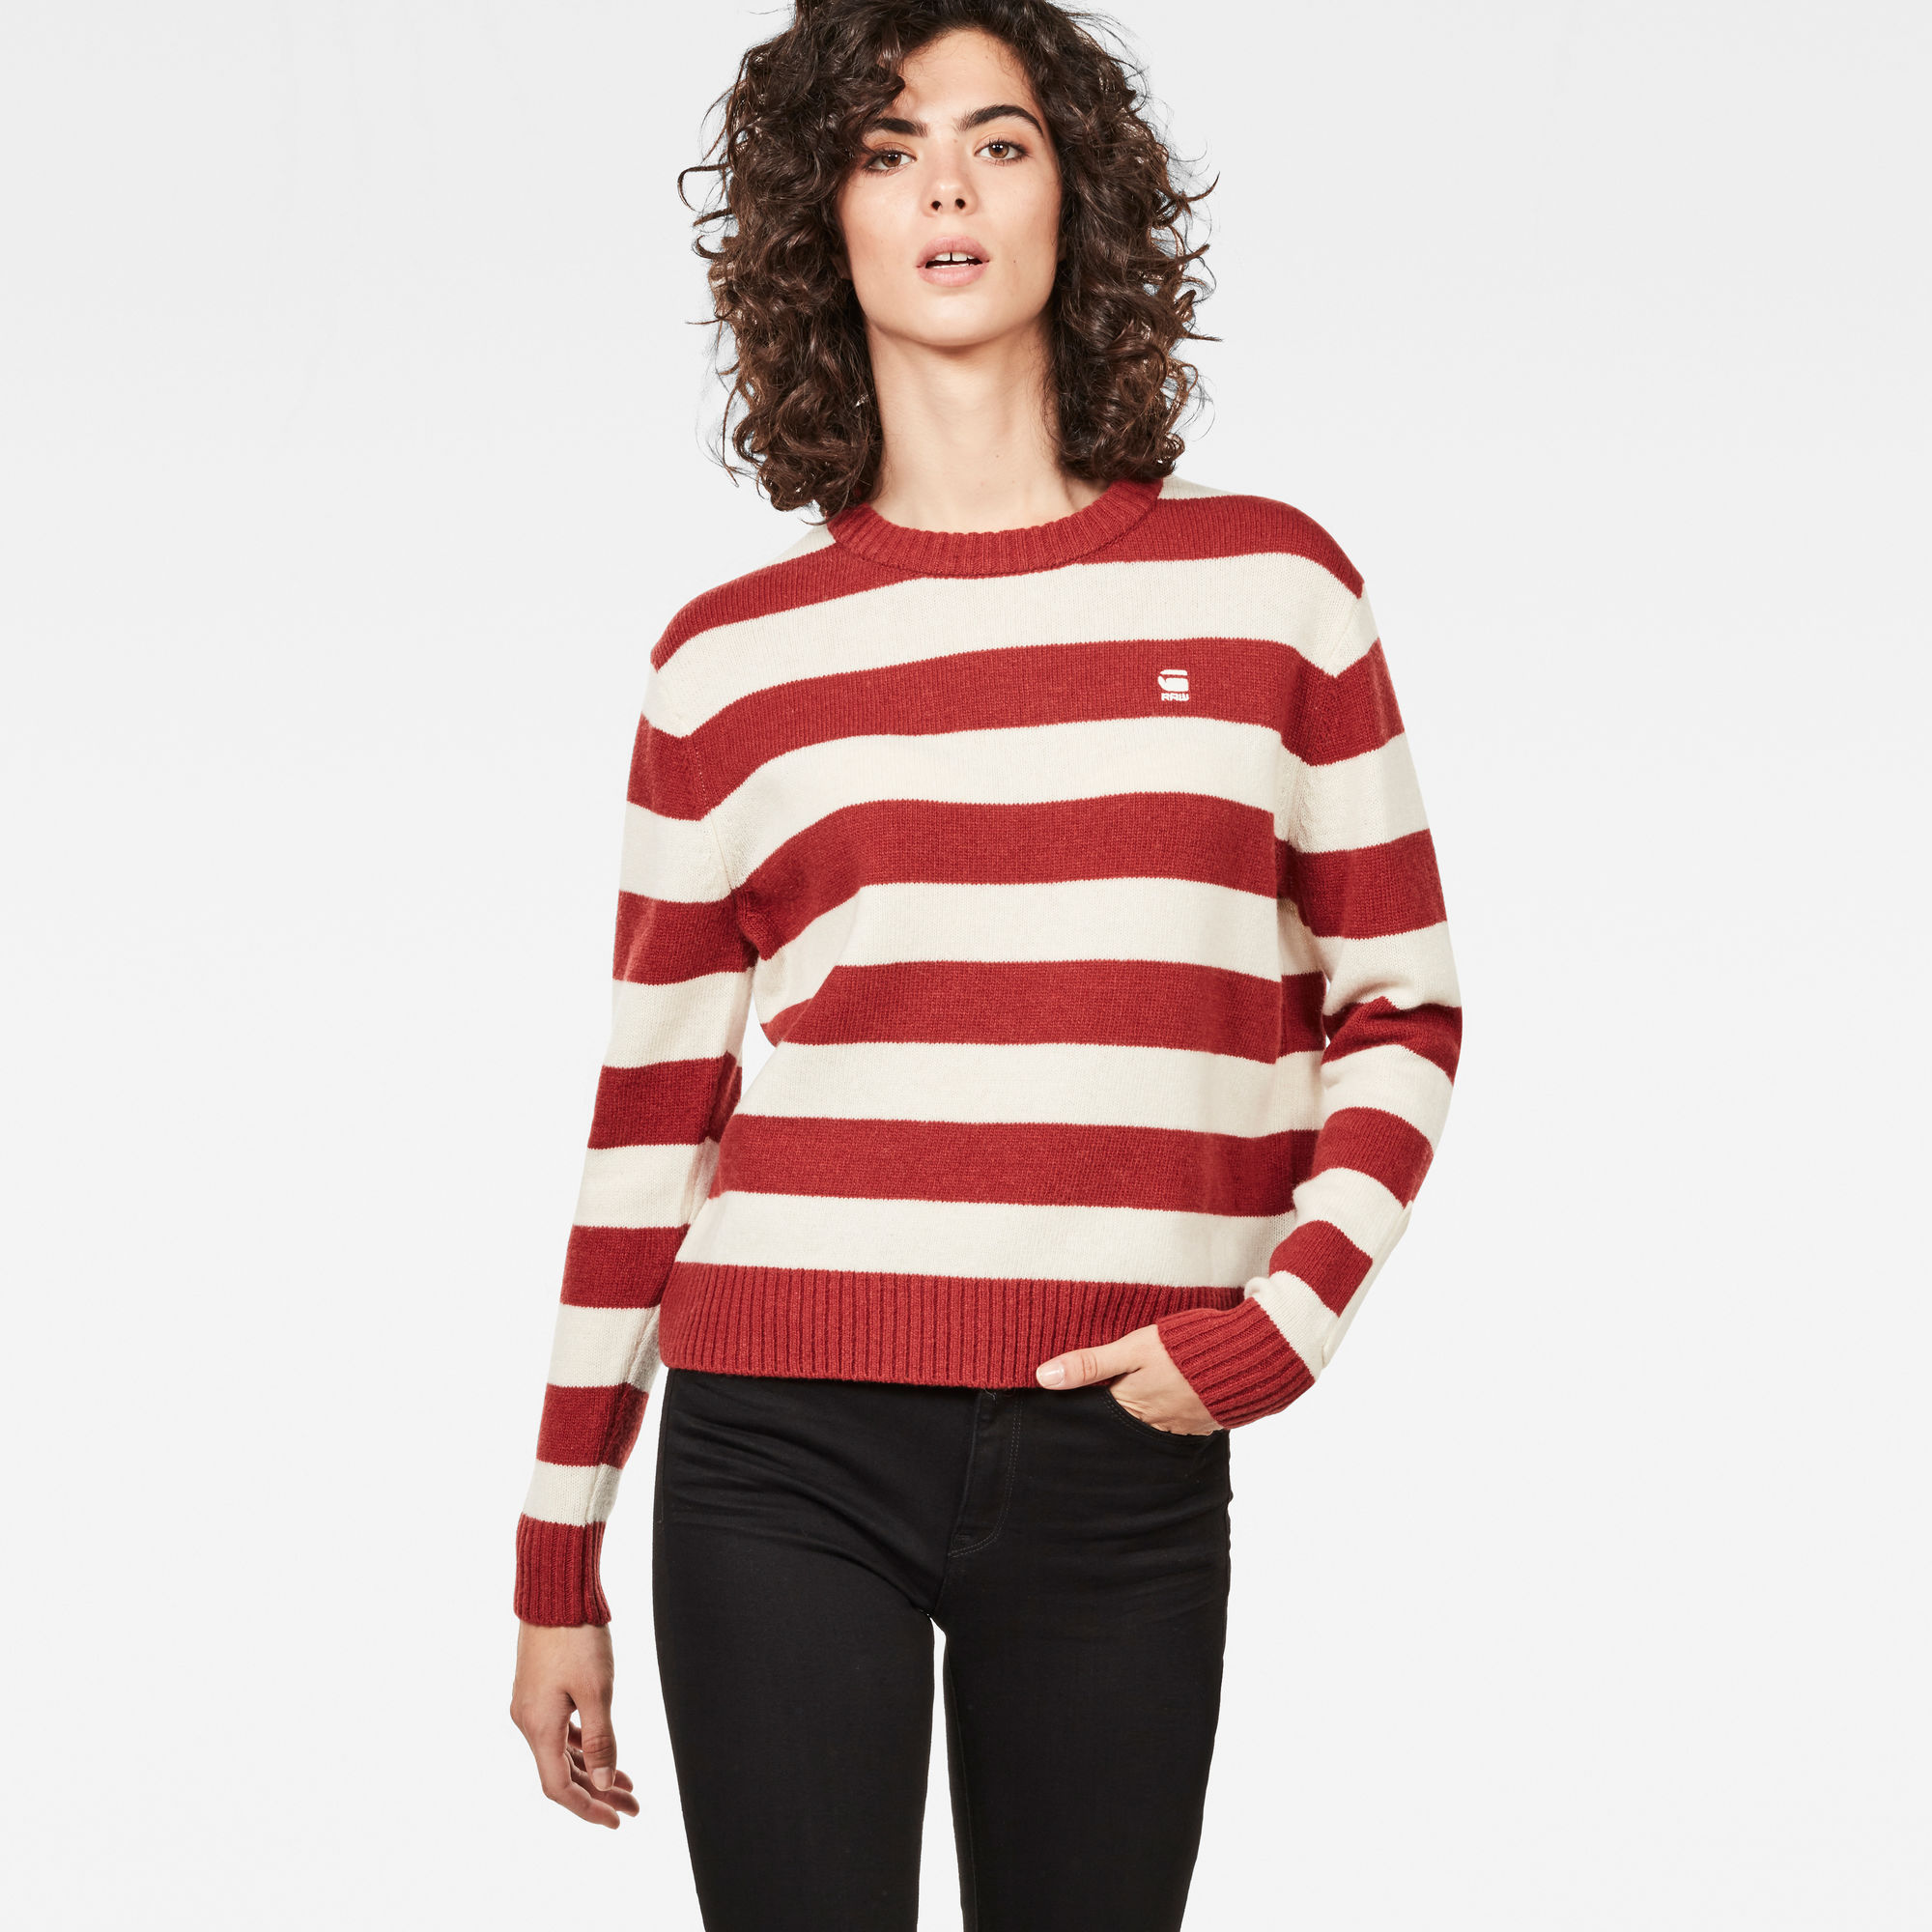 Image of G Star Raw Doolin Stripe Knit